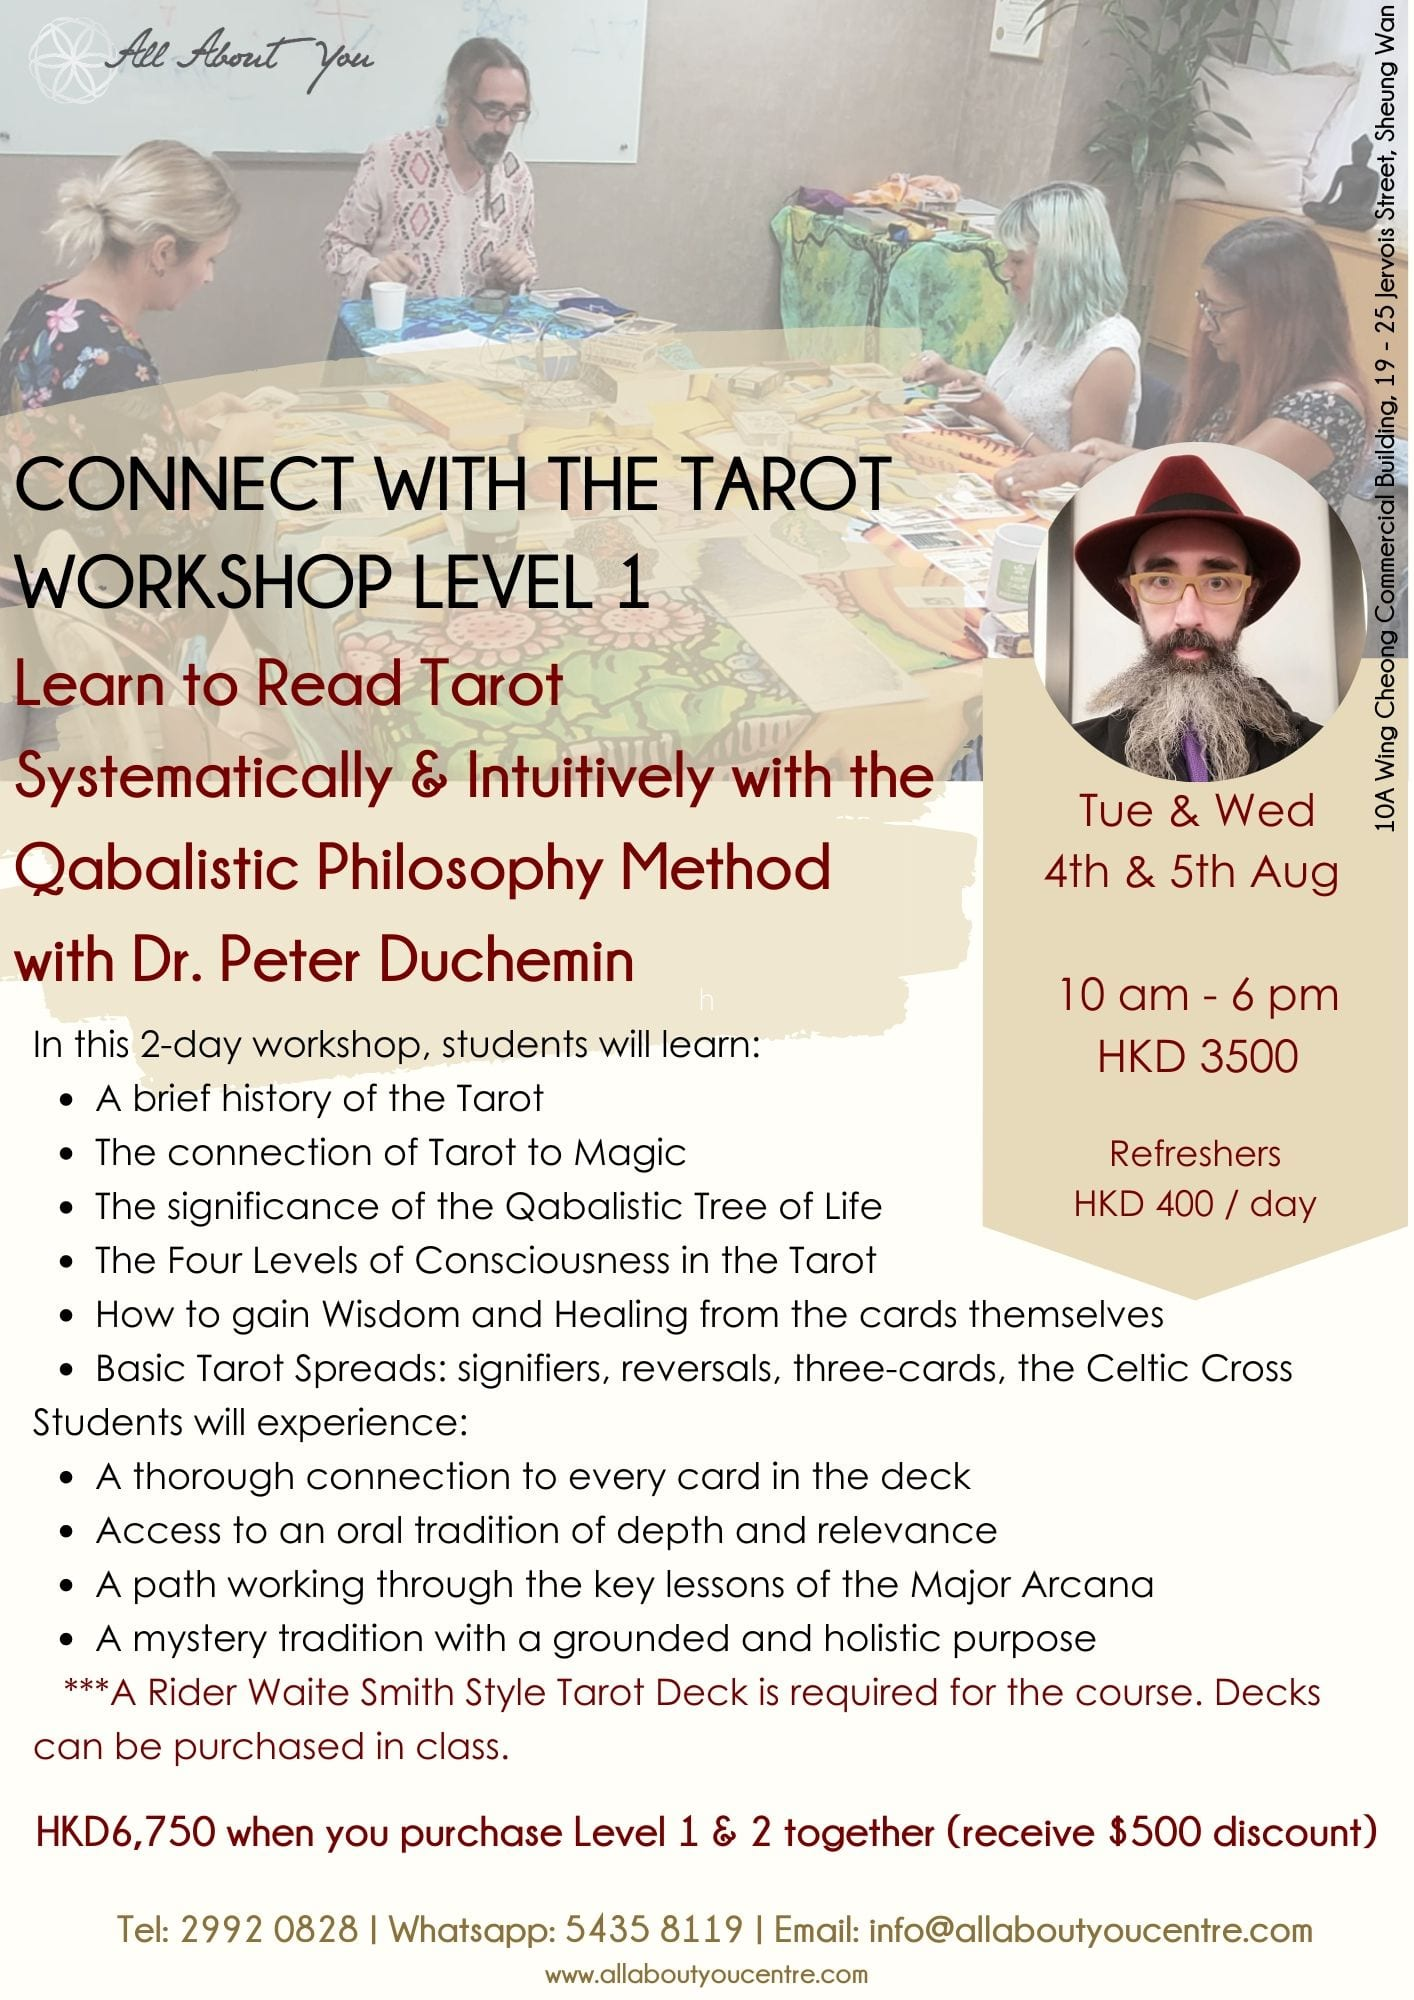 Level 1 Connect with the Tarot Workshop: Learn to Read Tarot Systematically and Intuitively with the Qabalistic Philosophy Method